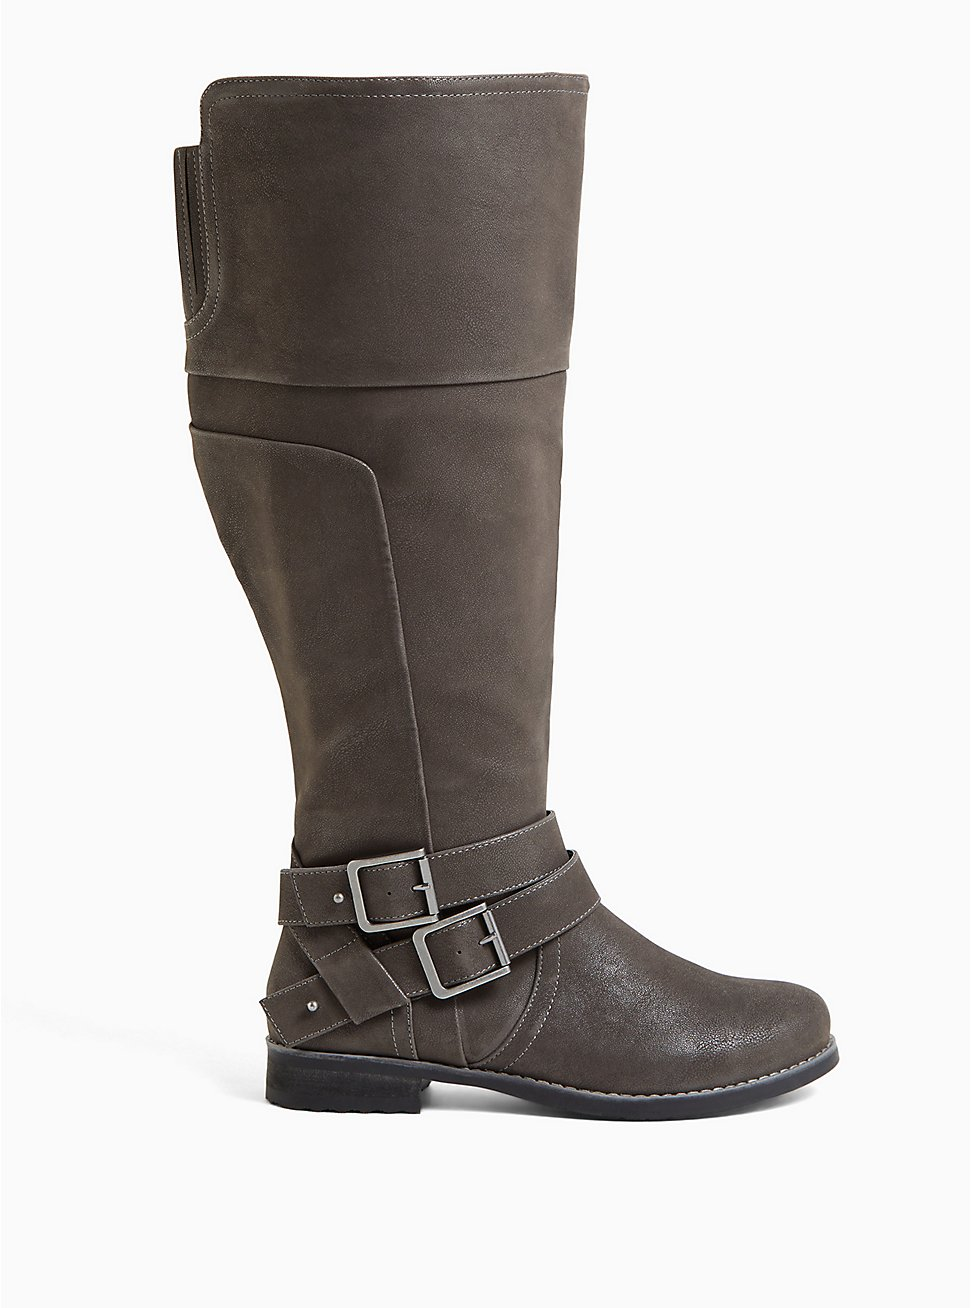 Grey Oiled Faux Suede Double Buckle Knee-High Boot (WW & Wide to Extra Wide Calf), GREY, hi-res